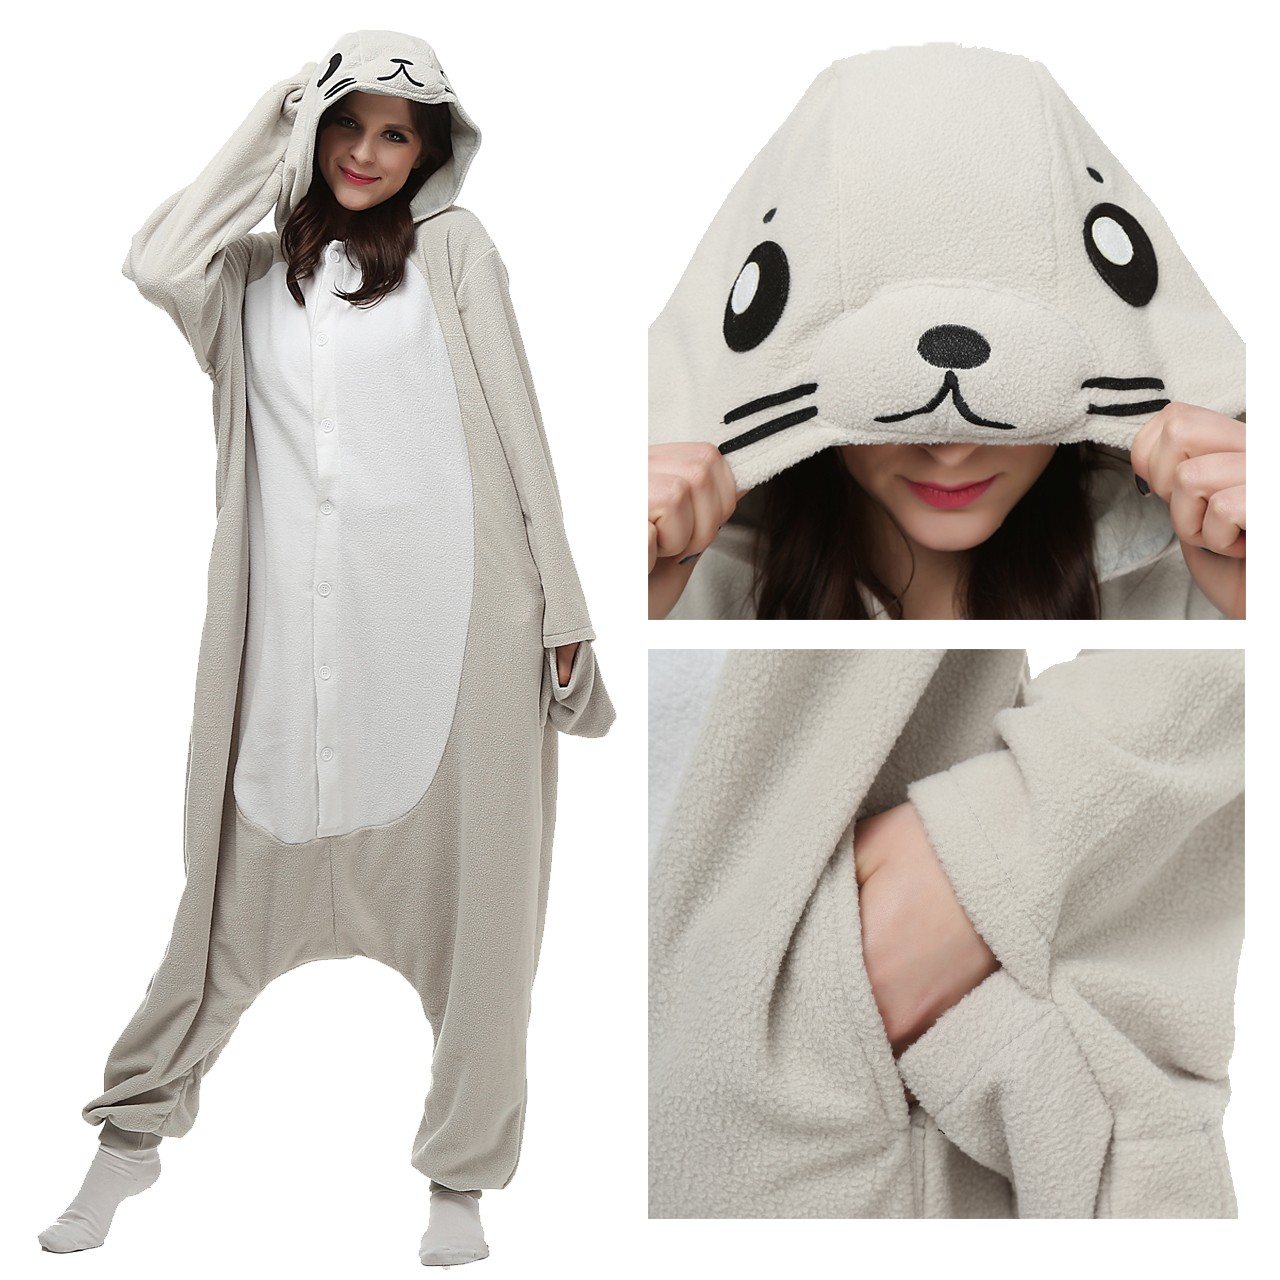 Seal Onesie for Adult Animal Pajamas Kigurumi Party Costumes 64f7a7be1